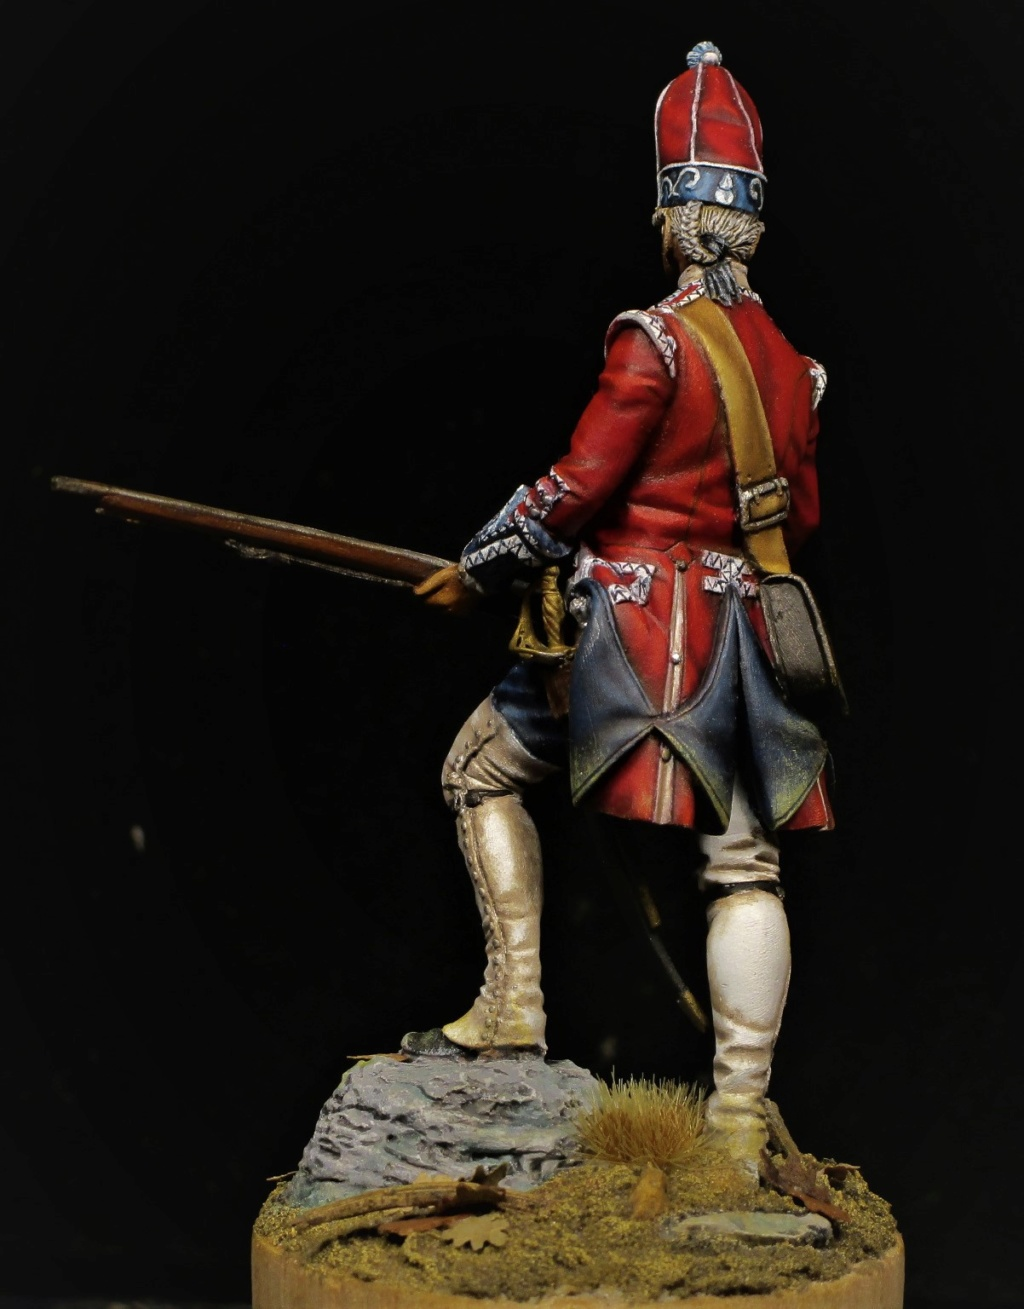 grenadier anglais du 18th Foot en 1751 - Page 2 Img_1224